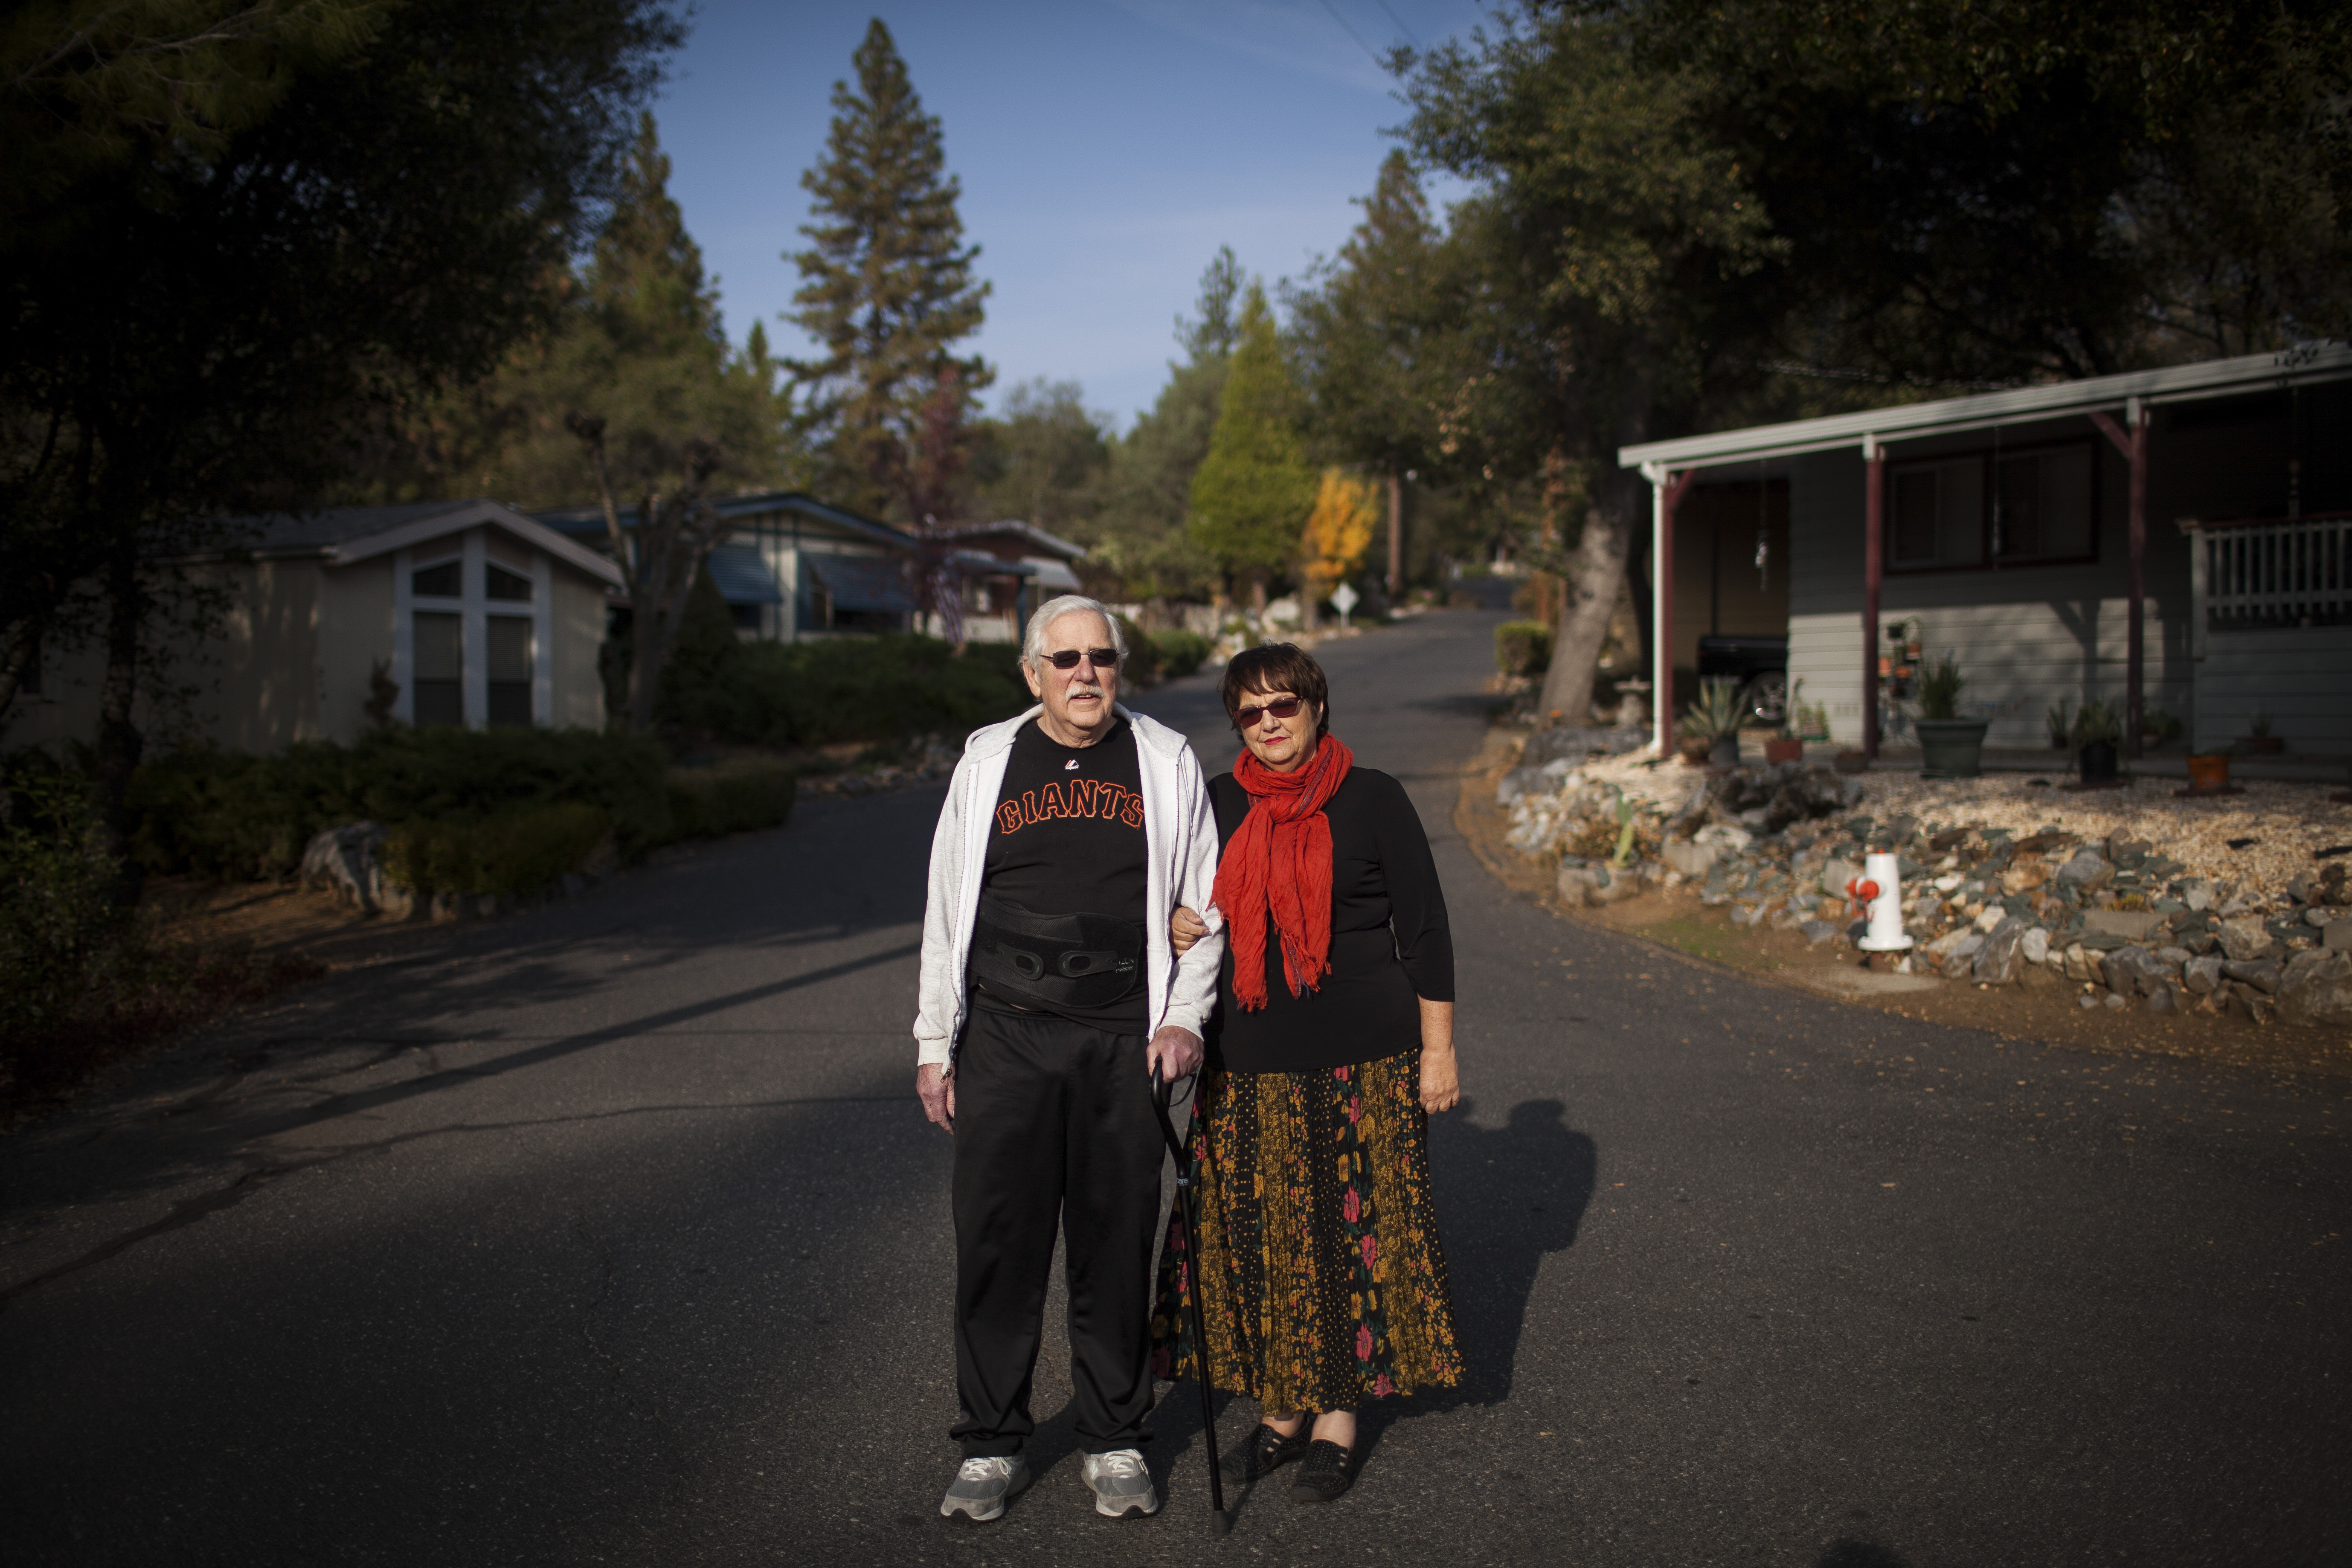 Barbara Zierten and her husband, John Dahlen, decided that the small town in the Sierra Nevada foothills to which they retired isn't an ideal fit. When choosing a place to live for two decades or more, retirees also should consider whether a community reflects their values, and if the place can truly meet their needs for health care, as well as social and cultural activities as they grow older.